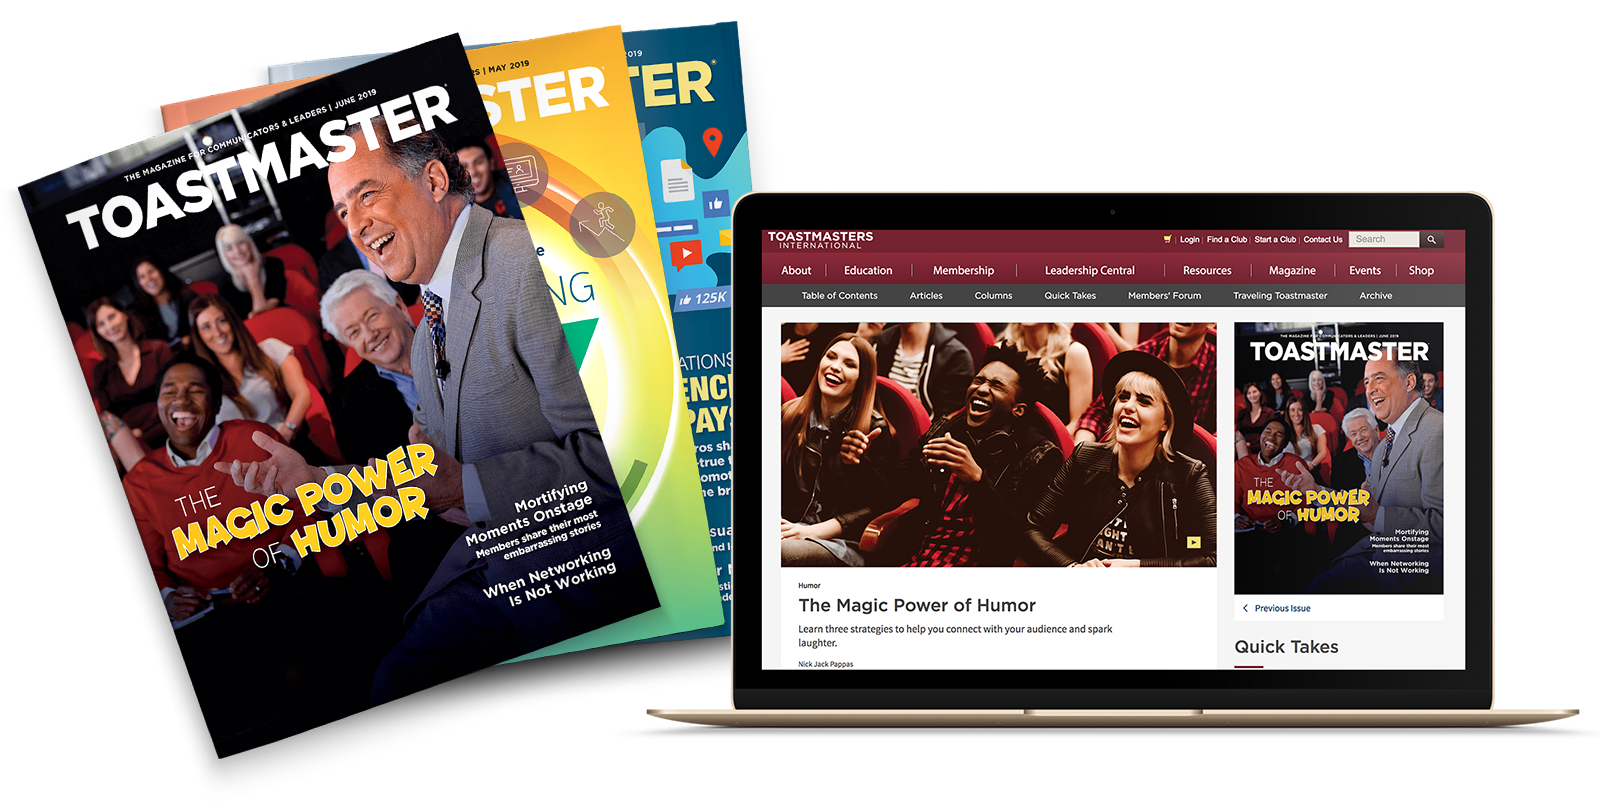 Toastmaster Magazine in print and online on laptop